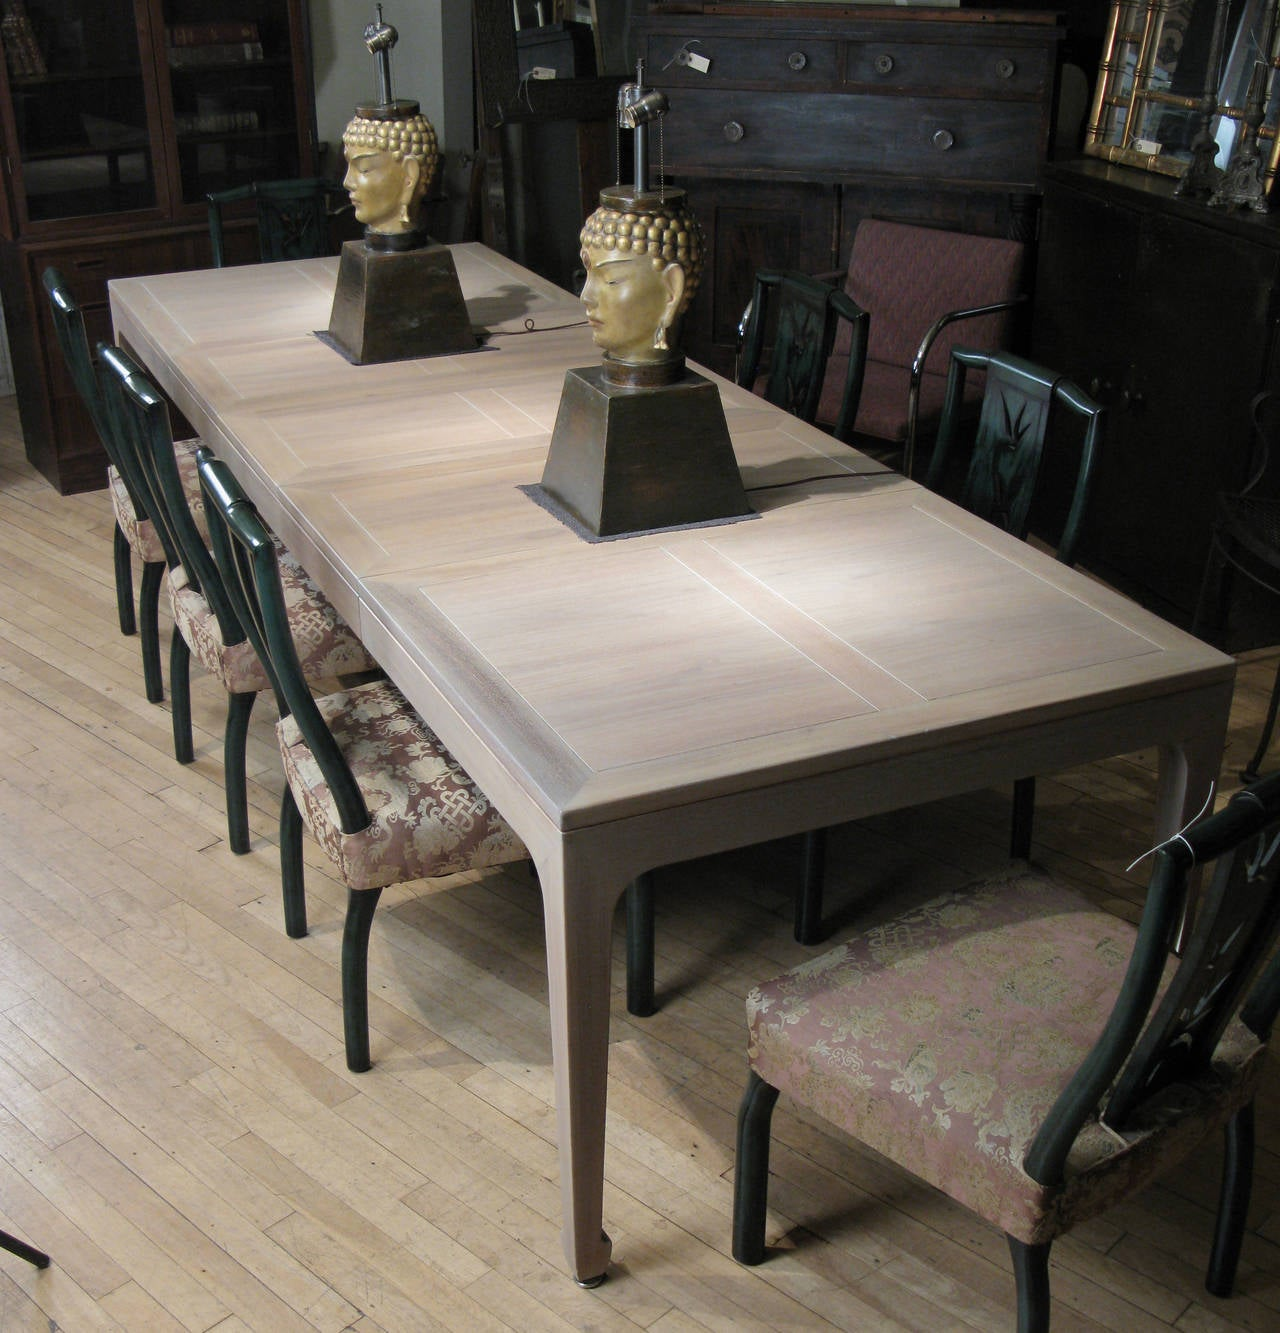 Michael taylor cyprus tree trunk dining table at 1stdibs - Classic Bleached Walnut Extension Dining Table By Michael Taylor For Baker 2